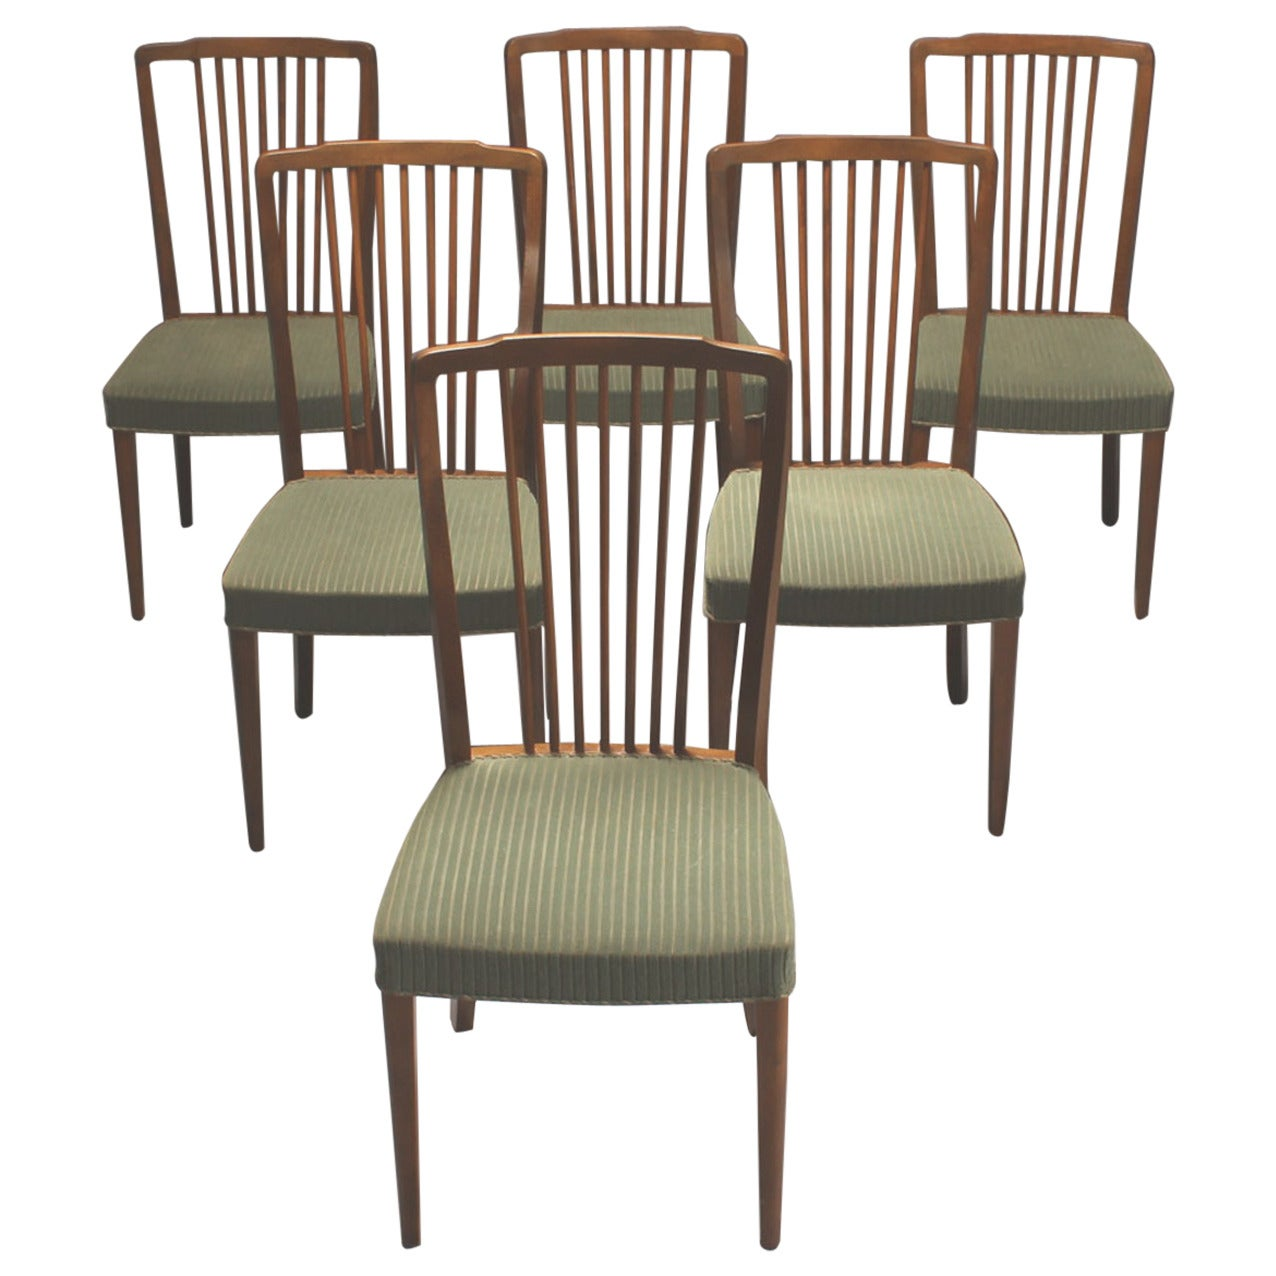 Set of Six 1940s Danish Spindle Back Dining Chairs 1. Set of Six 1940s Danish Spindle Back Dining Chairs For Sale at 1stdibs